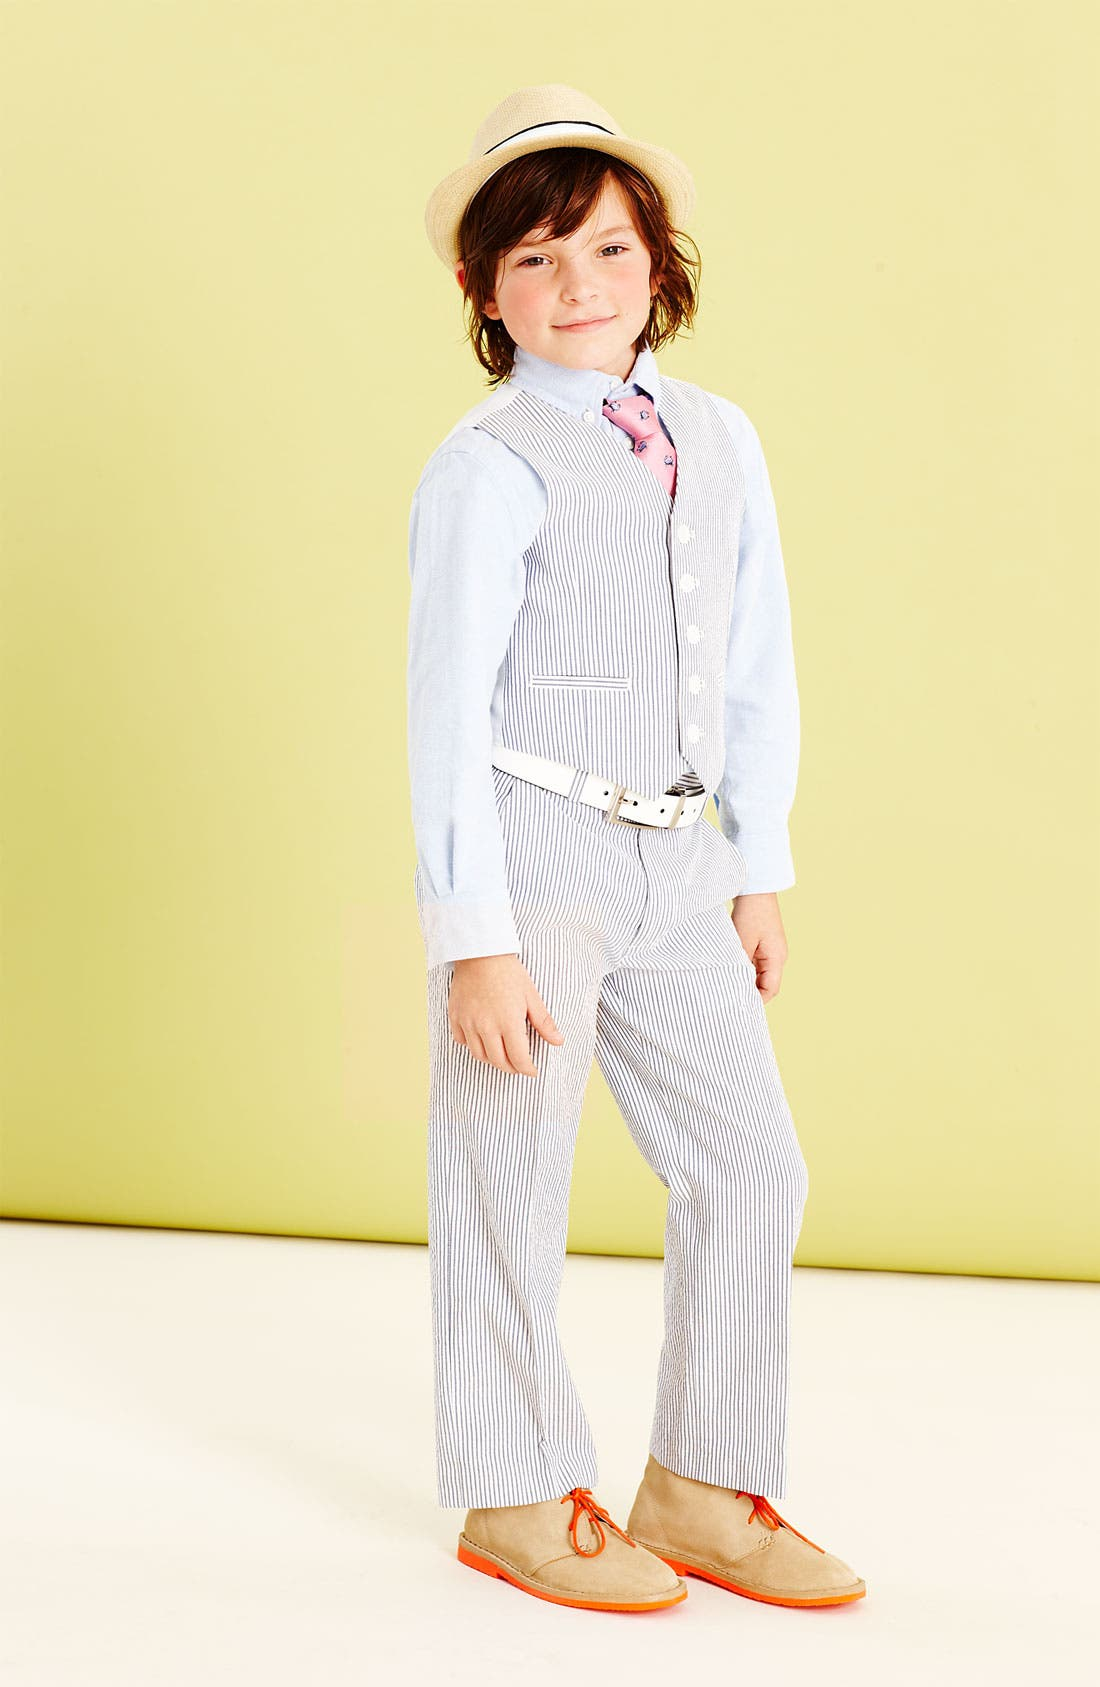 Alternate Image 1 Selected - C2 by Calibrate Vest, Nordstrom Oxford Shirt & Trousers (Little Boys)